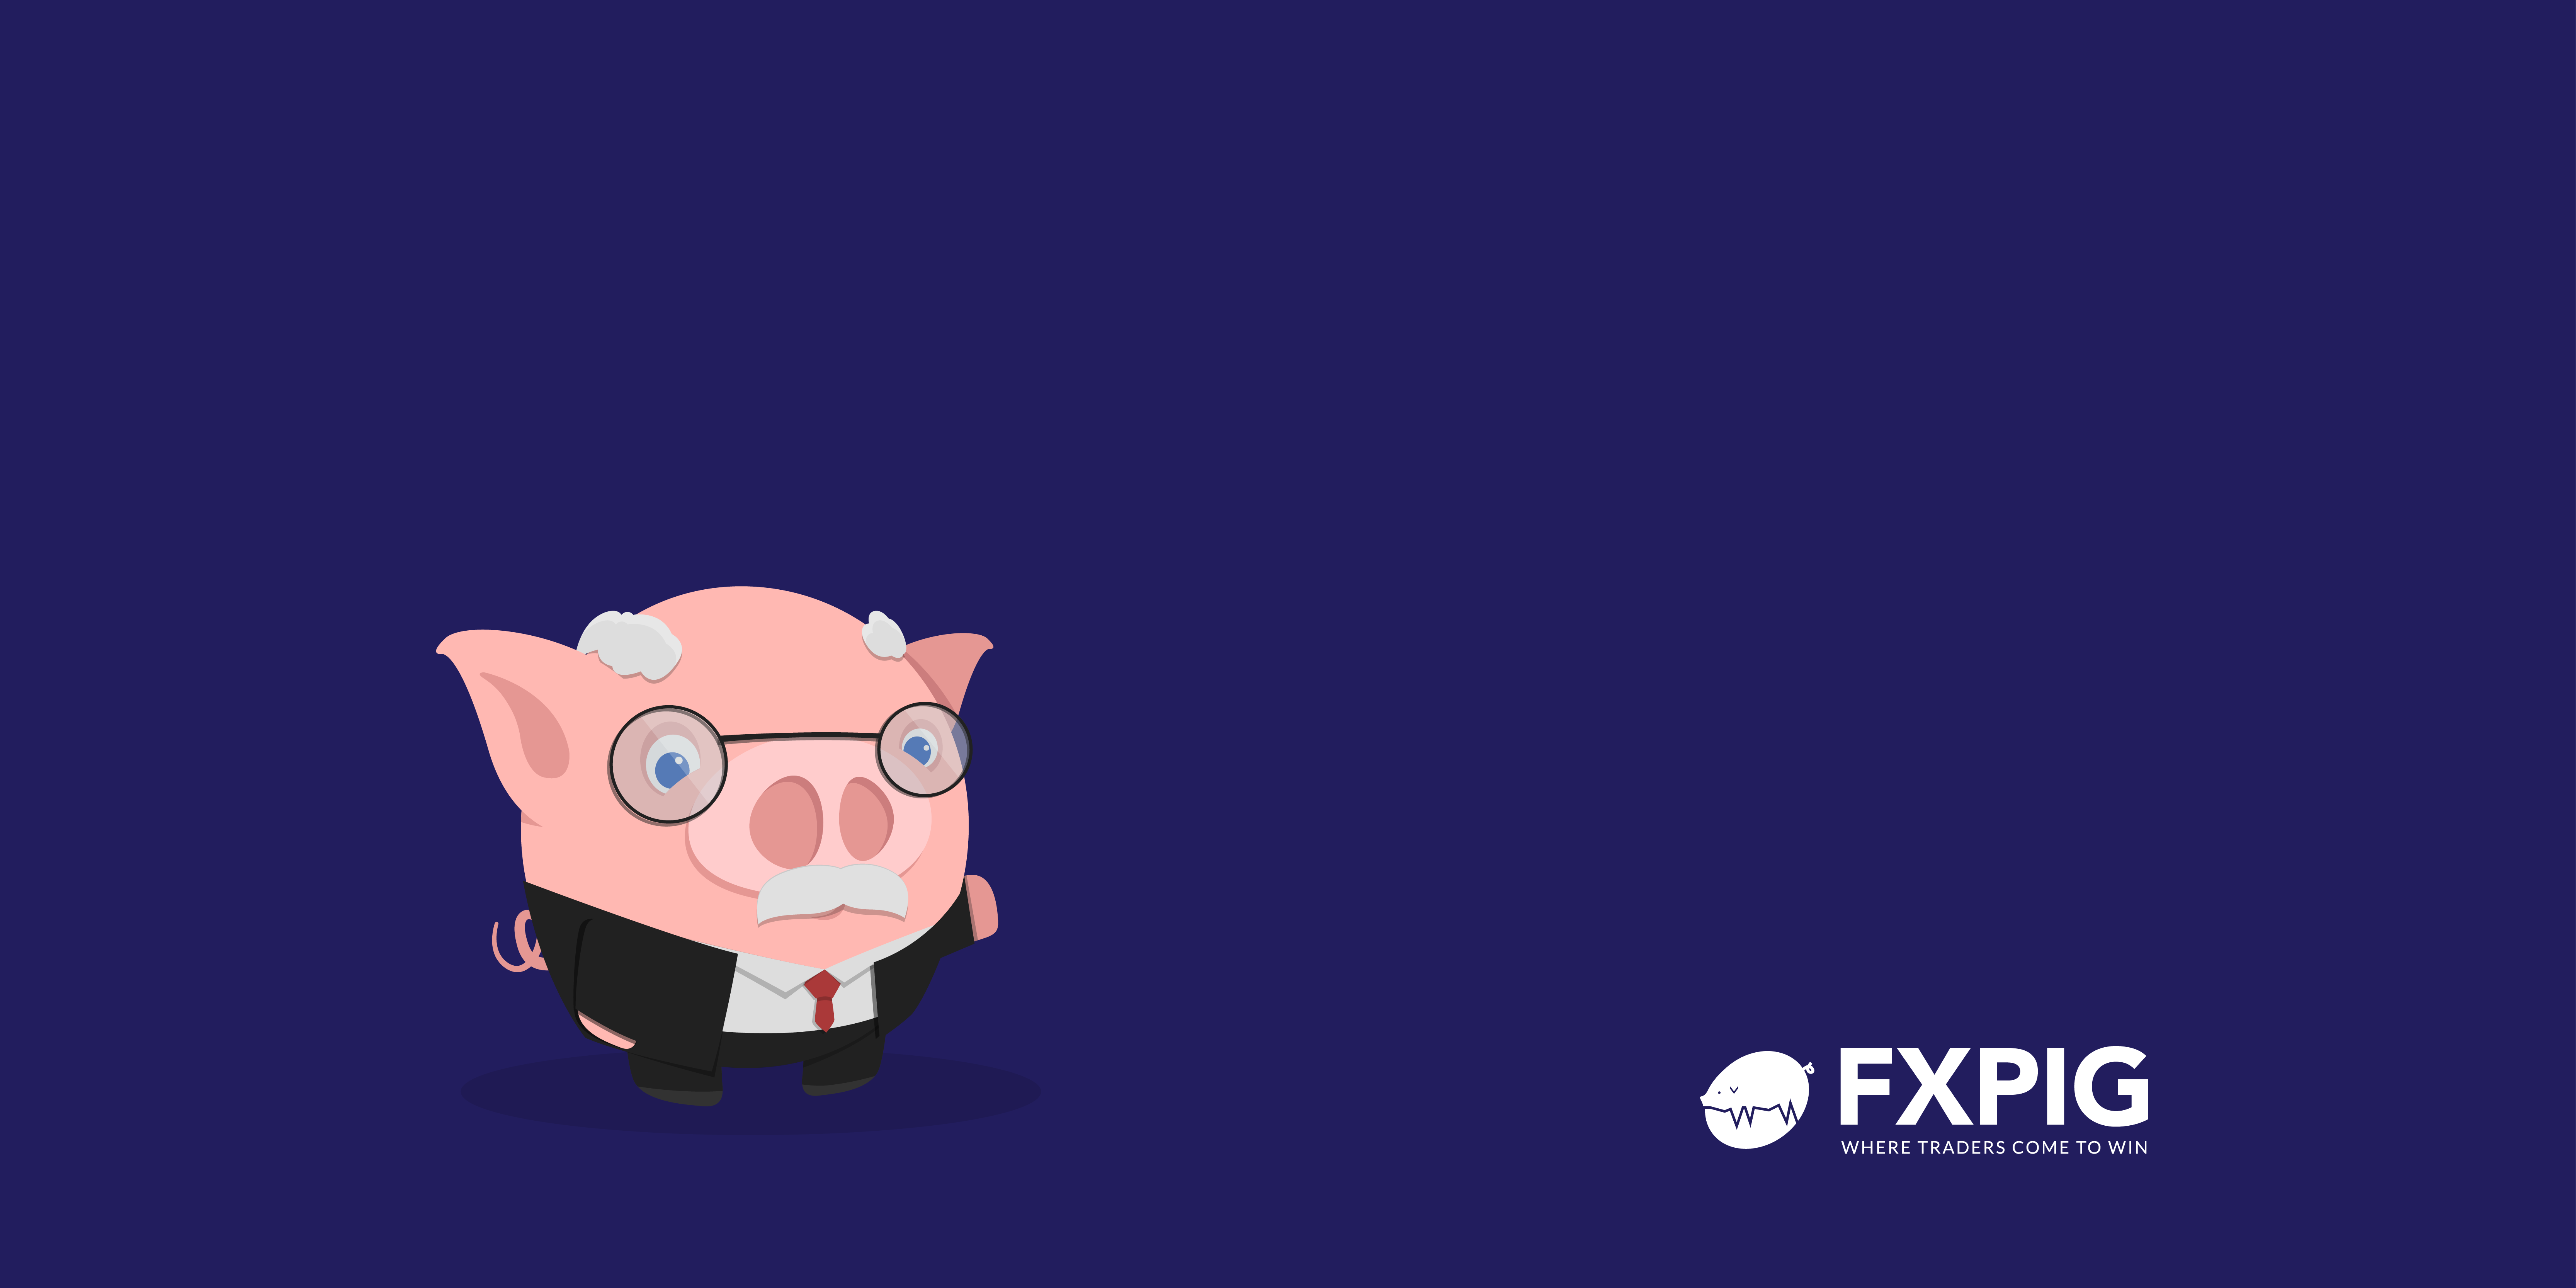 Forex_Trading_Fx_Trader_FXPIG_Forex-Trading-wisdom_Forex-Trading-Quotes_good_trading